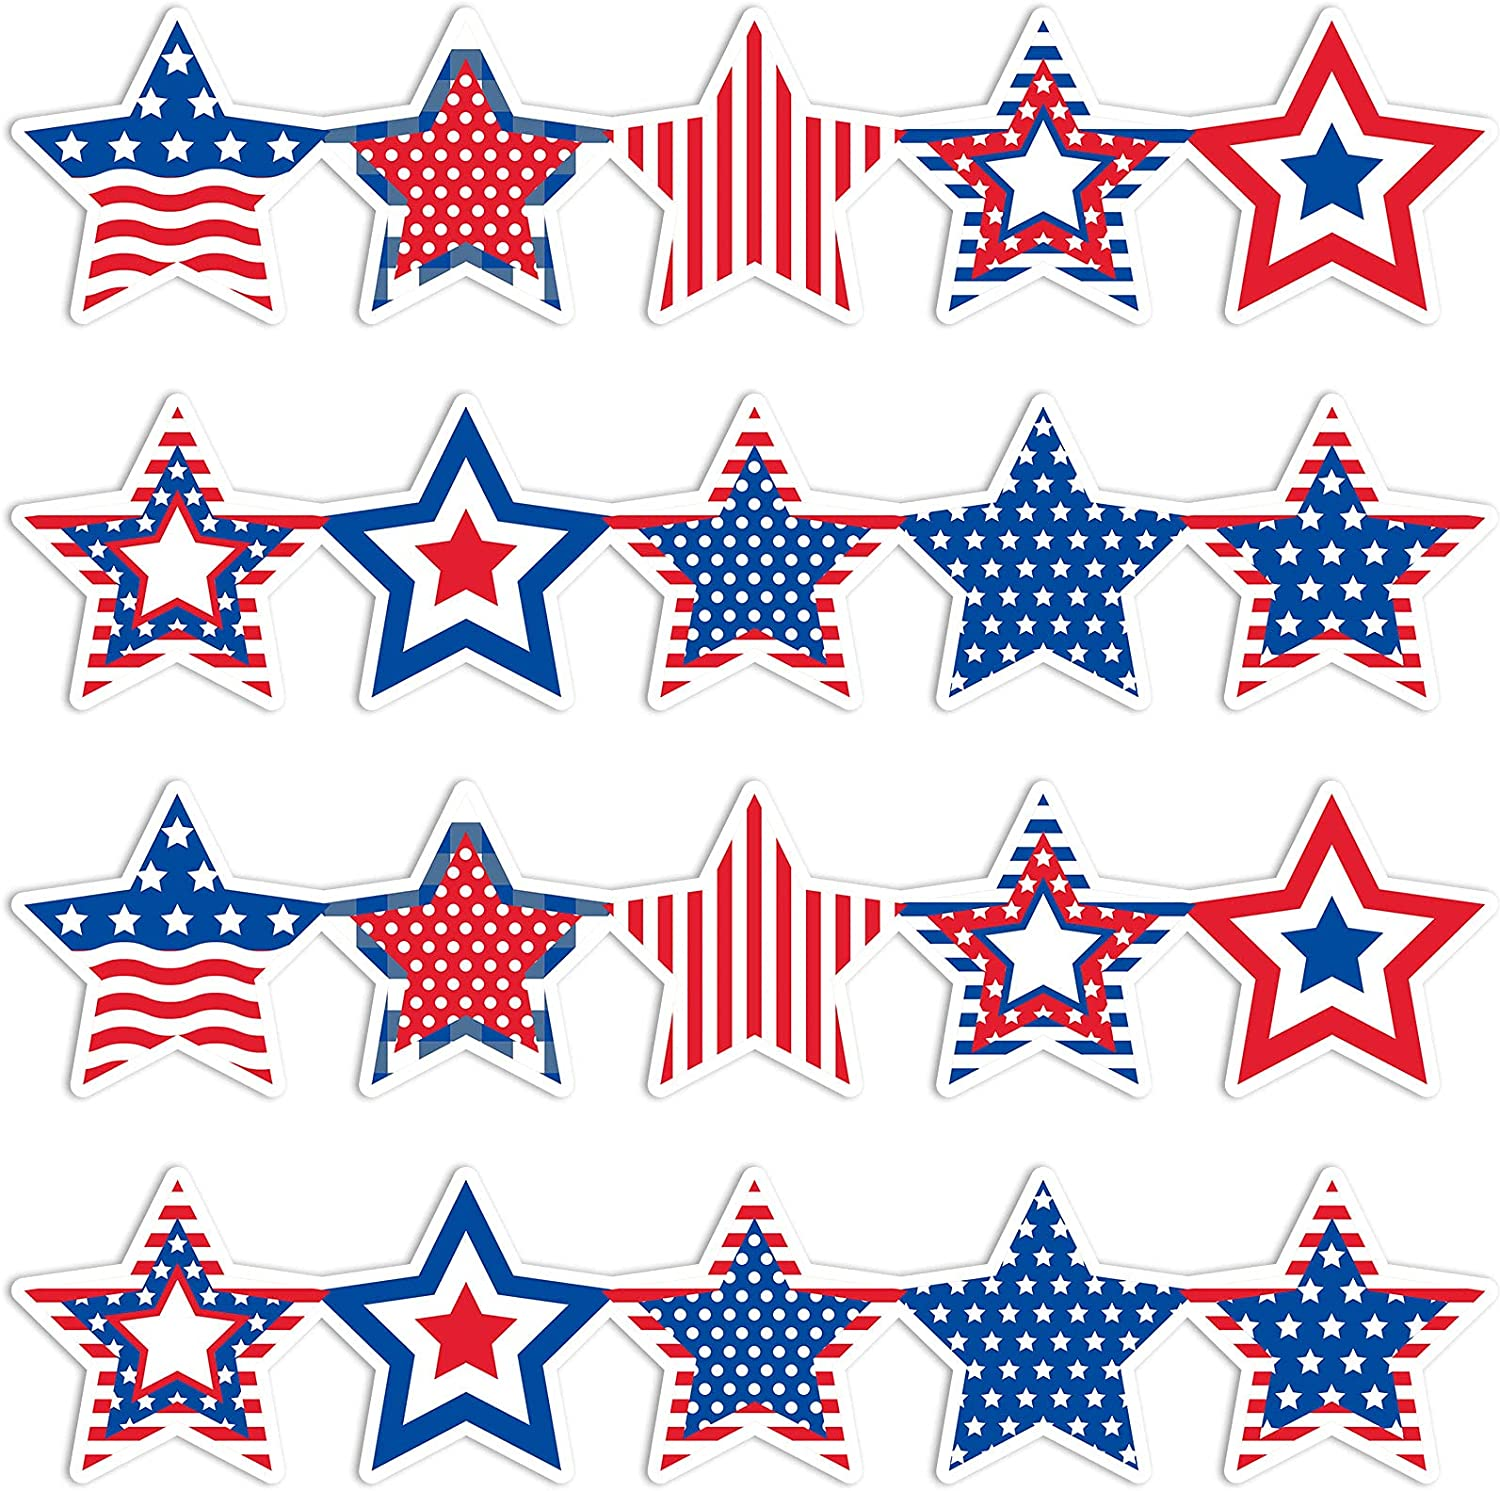 Whaline 68Ft 4th of July Scalloped Bulletin Board Border 60pcs Patriotic Red Blue White Stars Border Sticker 2 Design Self-Adhesive Stars Stripes Trim Border Decor for Independence Day Classroom